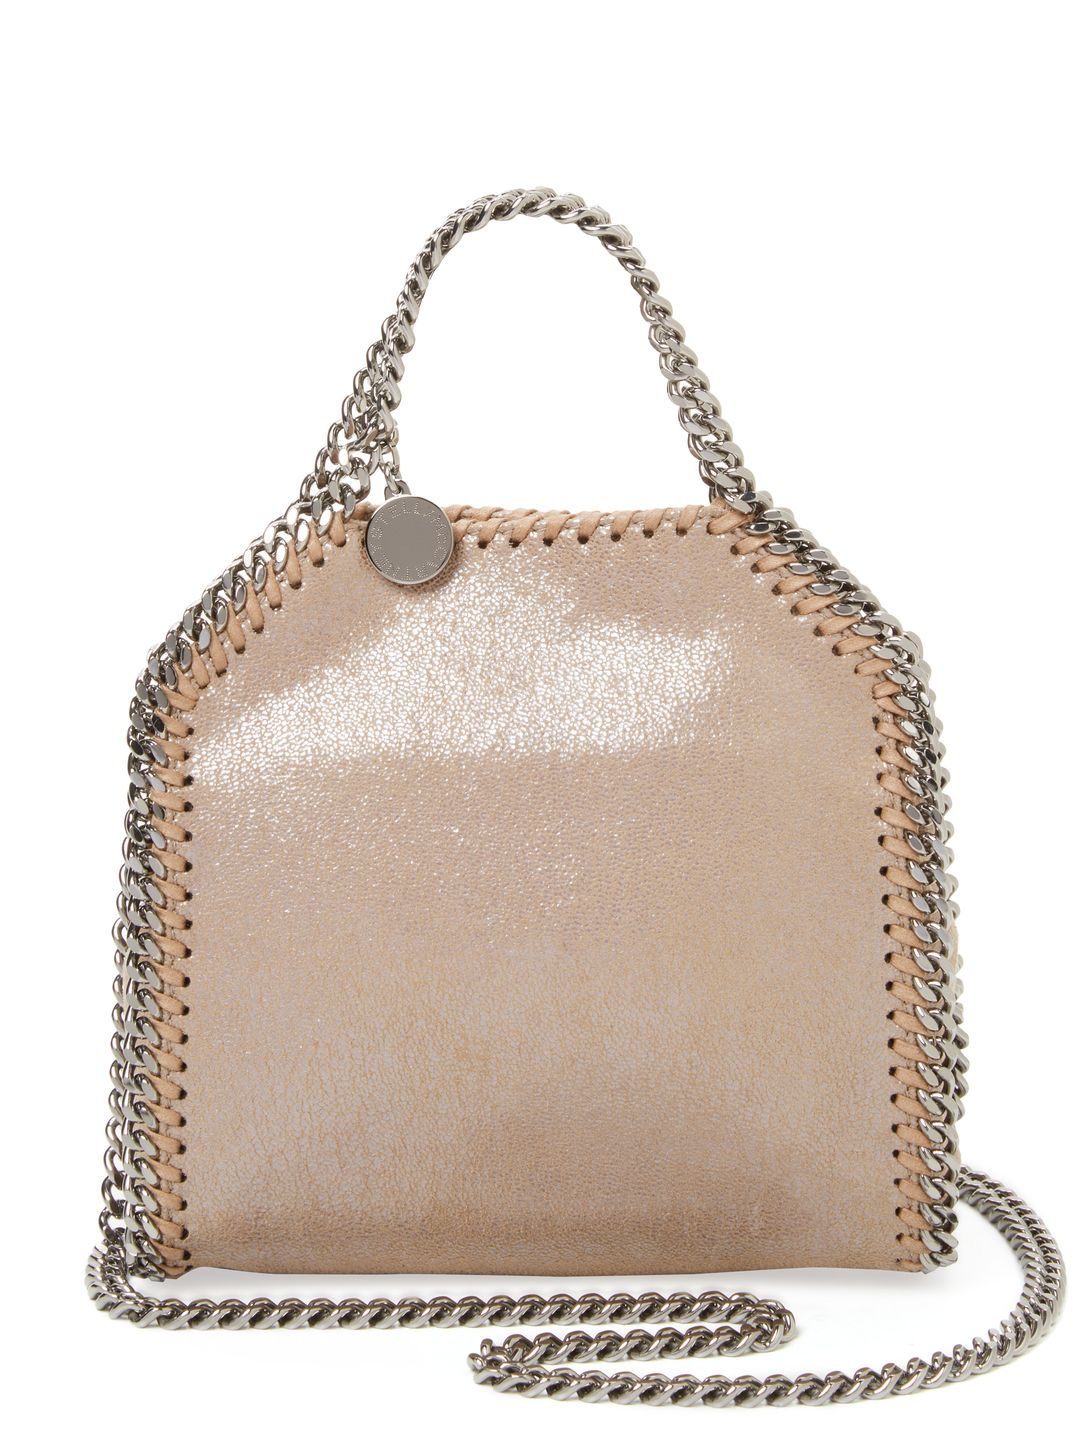 49eb78c44da5c STELLA MCCARTNEY WOMEN S FALABELLA METALLIC TINY TOTE - CREAM TAN.   stellamccartney  bags  polyester  tote  lining  metallic  shoulder bags  hand  bags